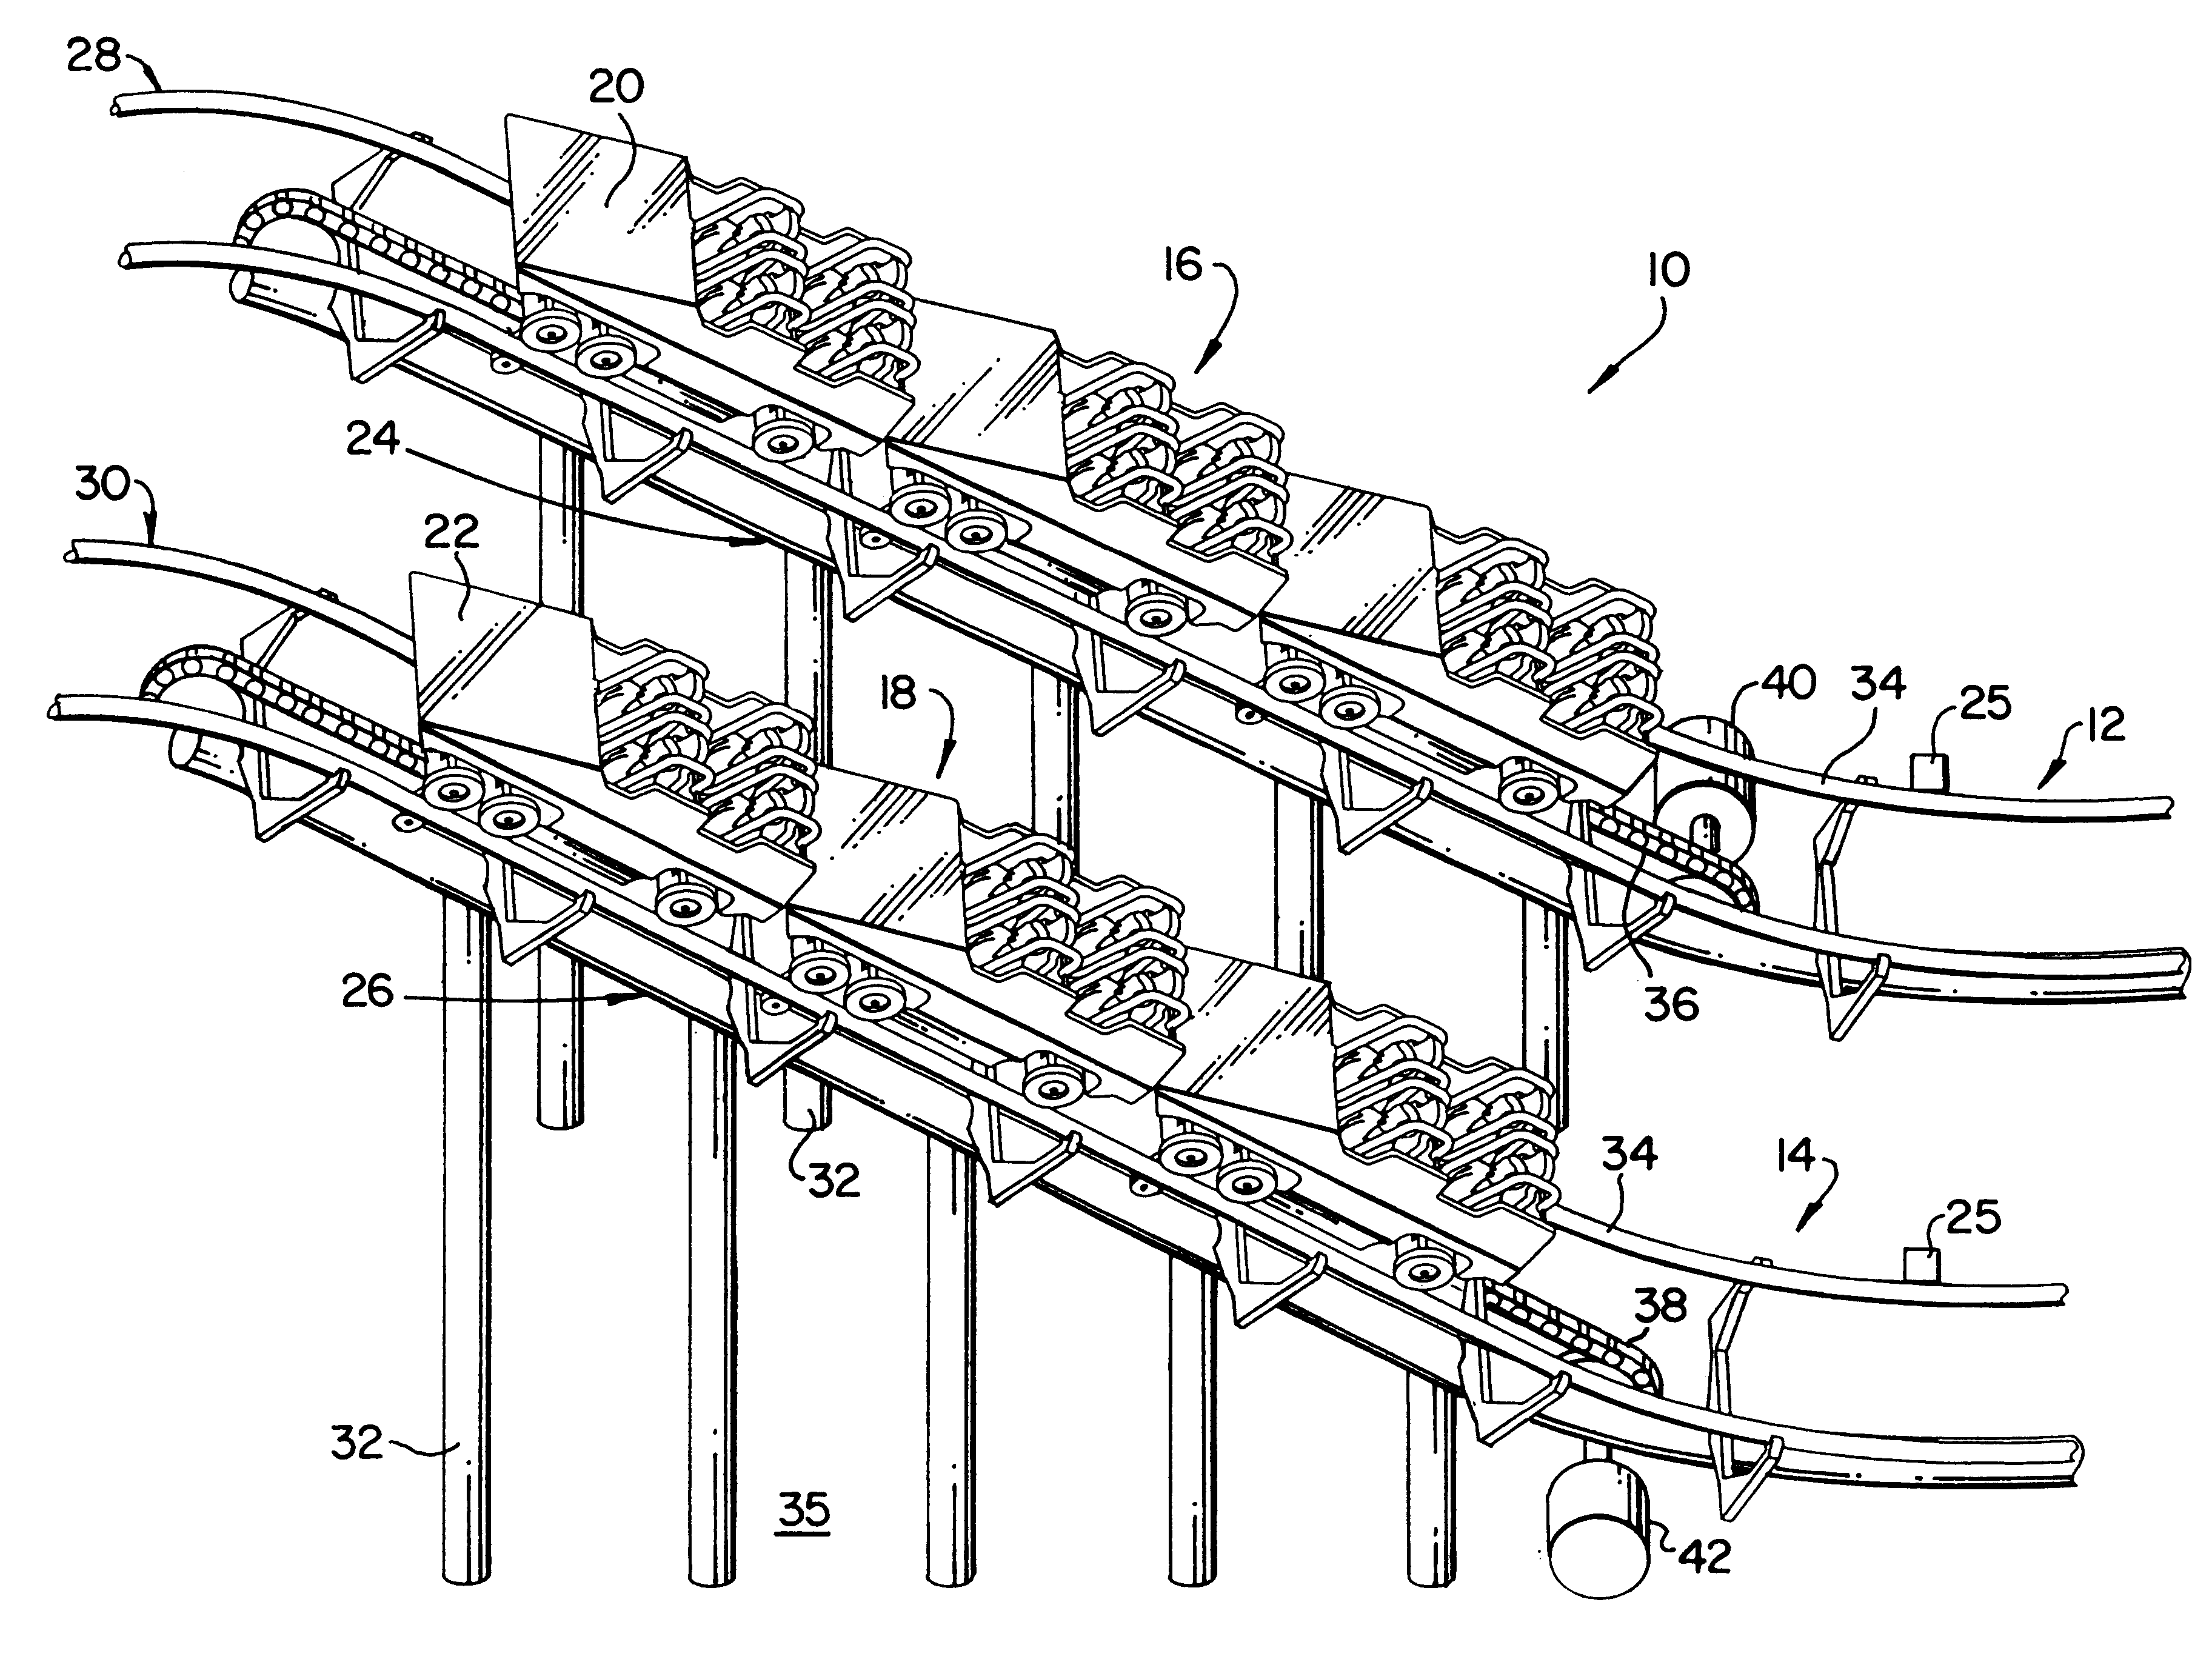 Linear Synchronous Motor Roller Coaster Rollercoaster Diagram Patent Us6170402 Control System Google Patents